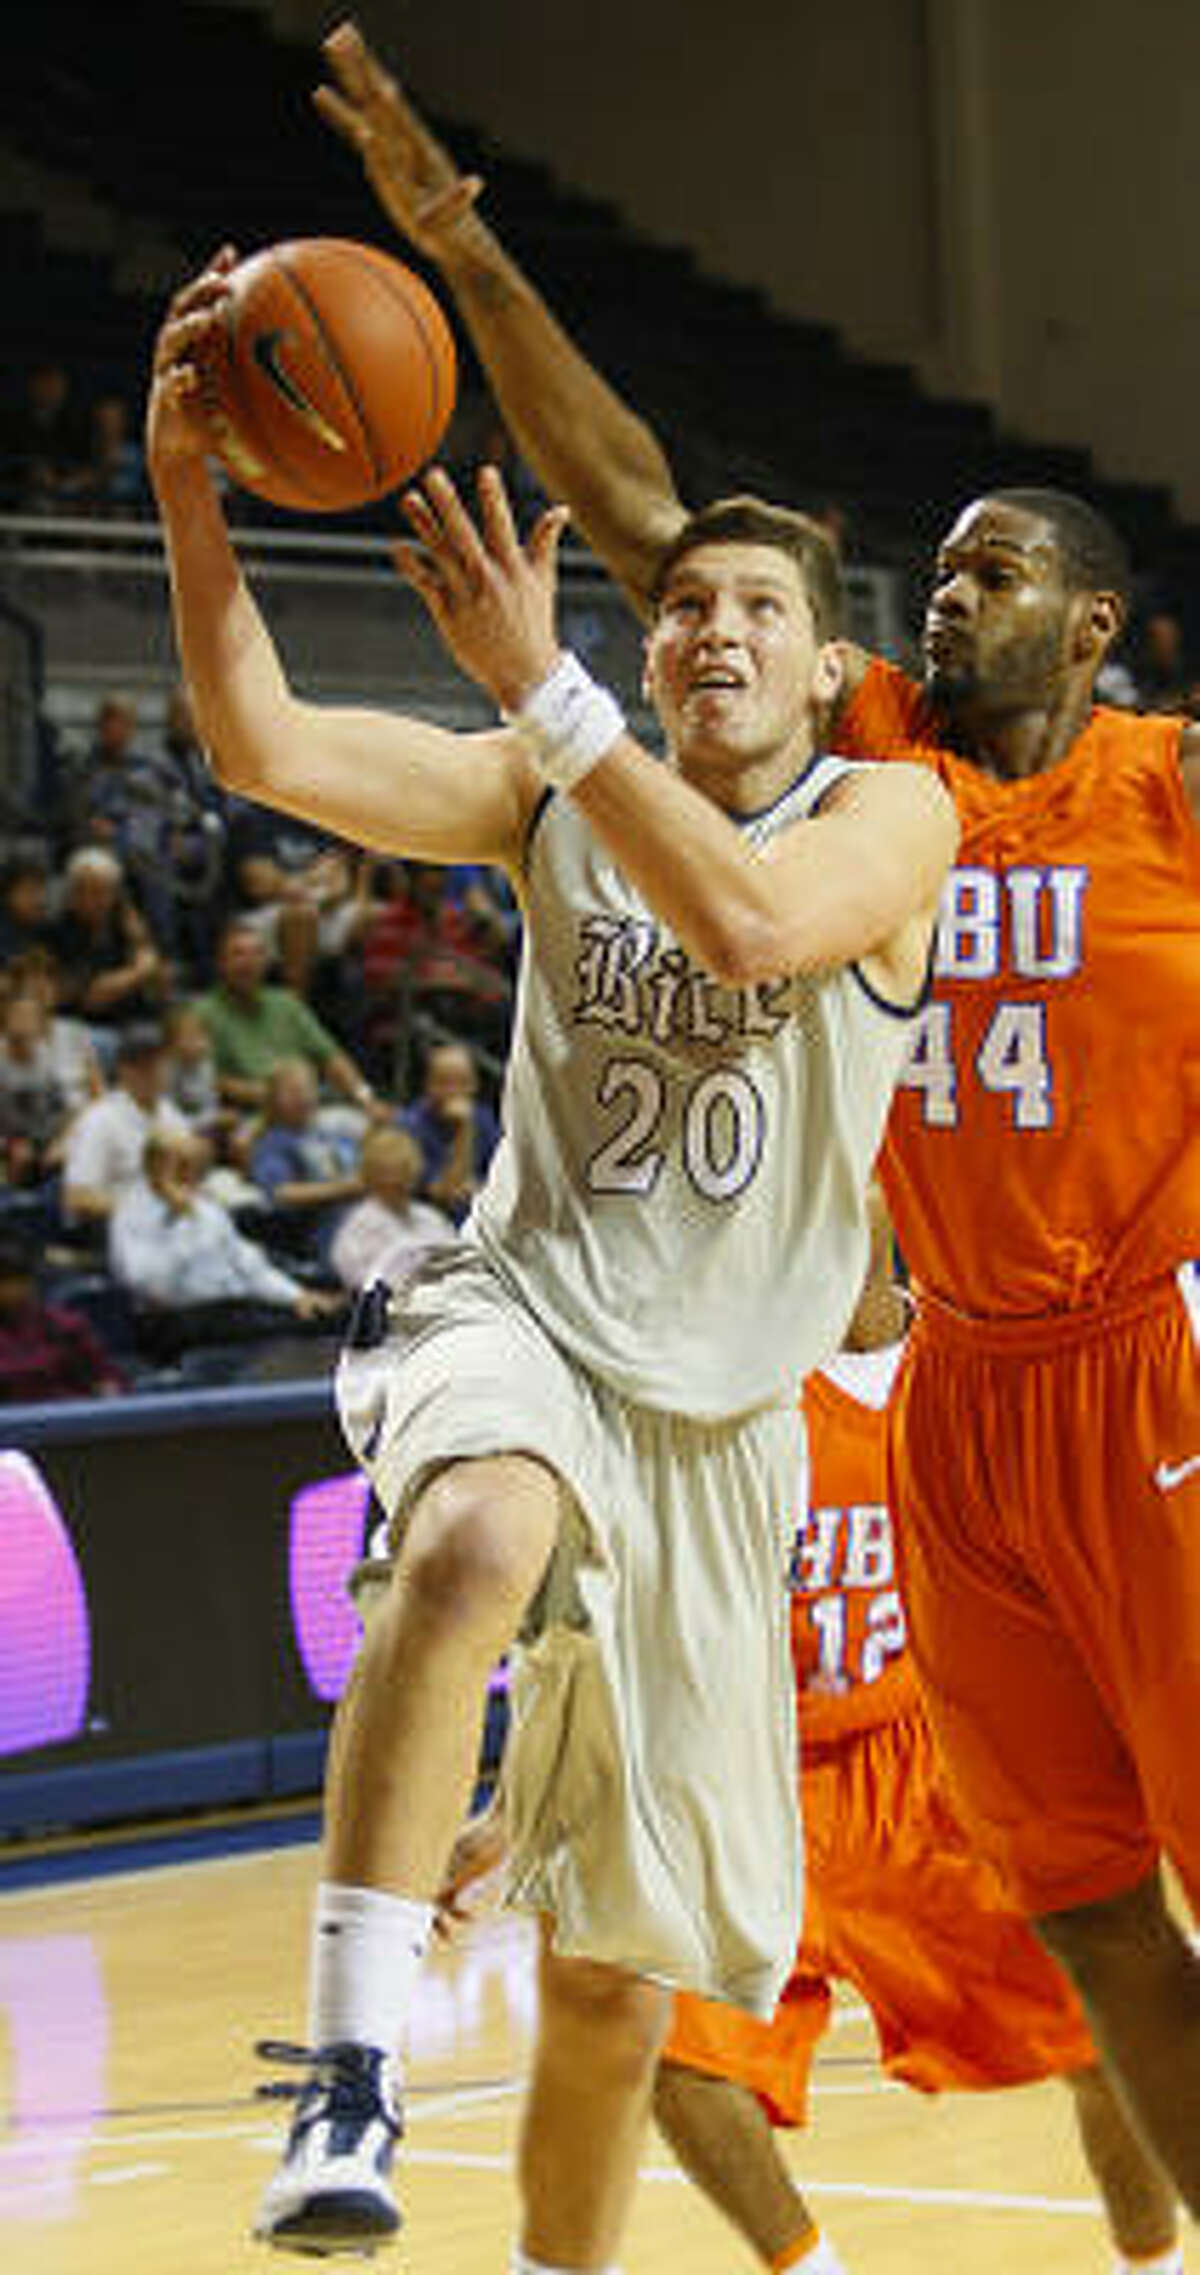 Rice's Lucas Kuipers, left, grabs a rebound in front of Houston Baptist's Damian Lewis in the Owls' win Sunday.